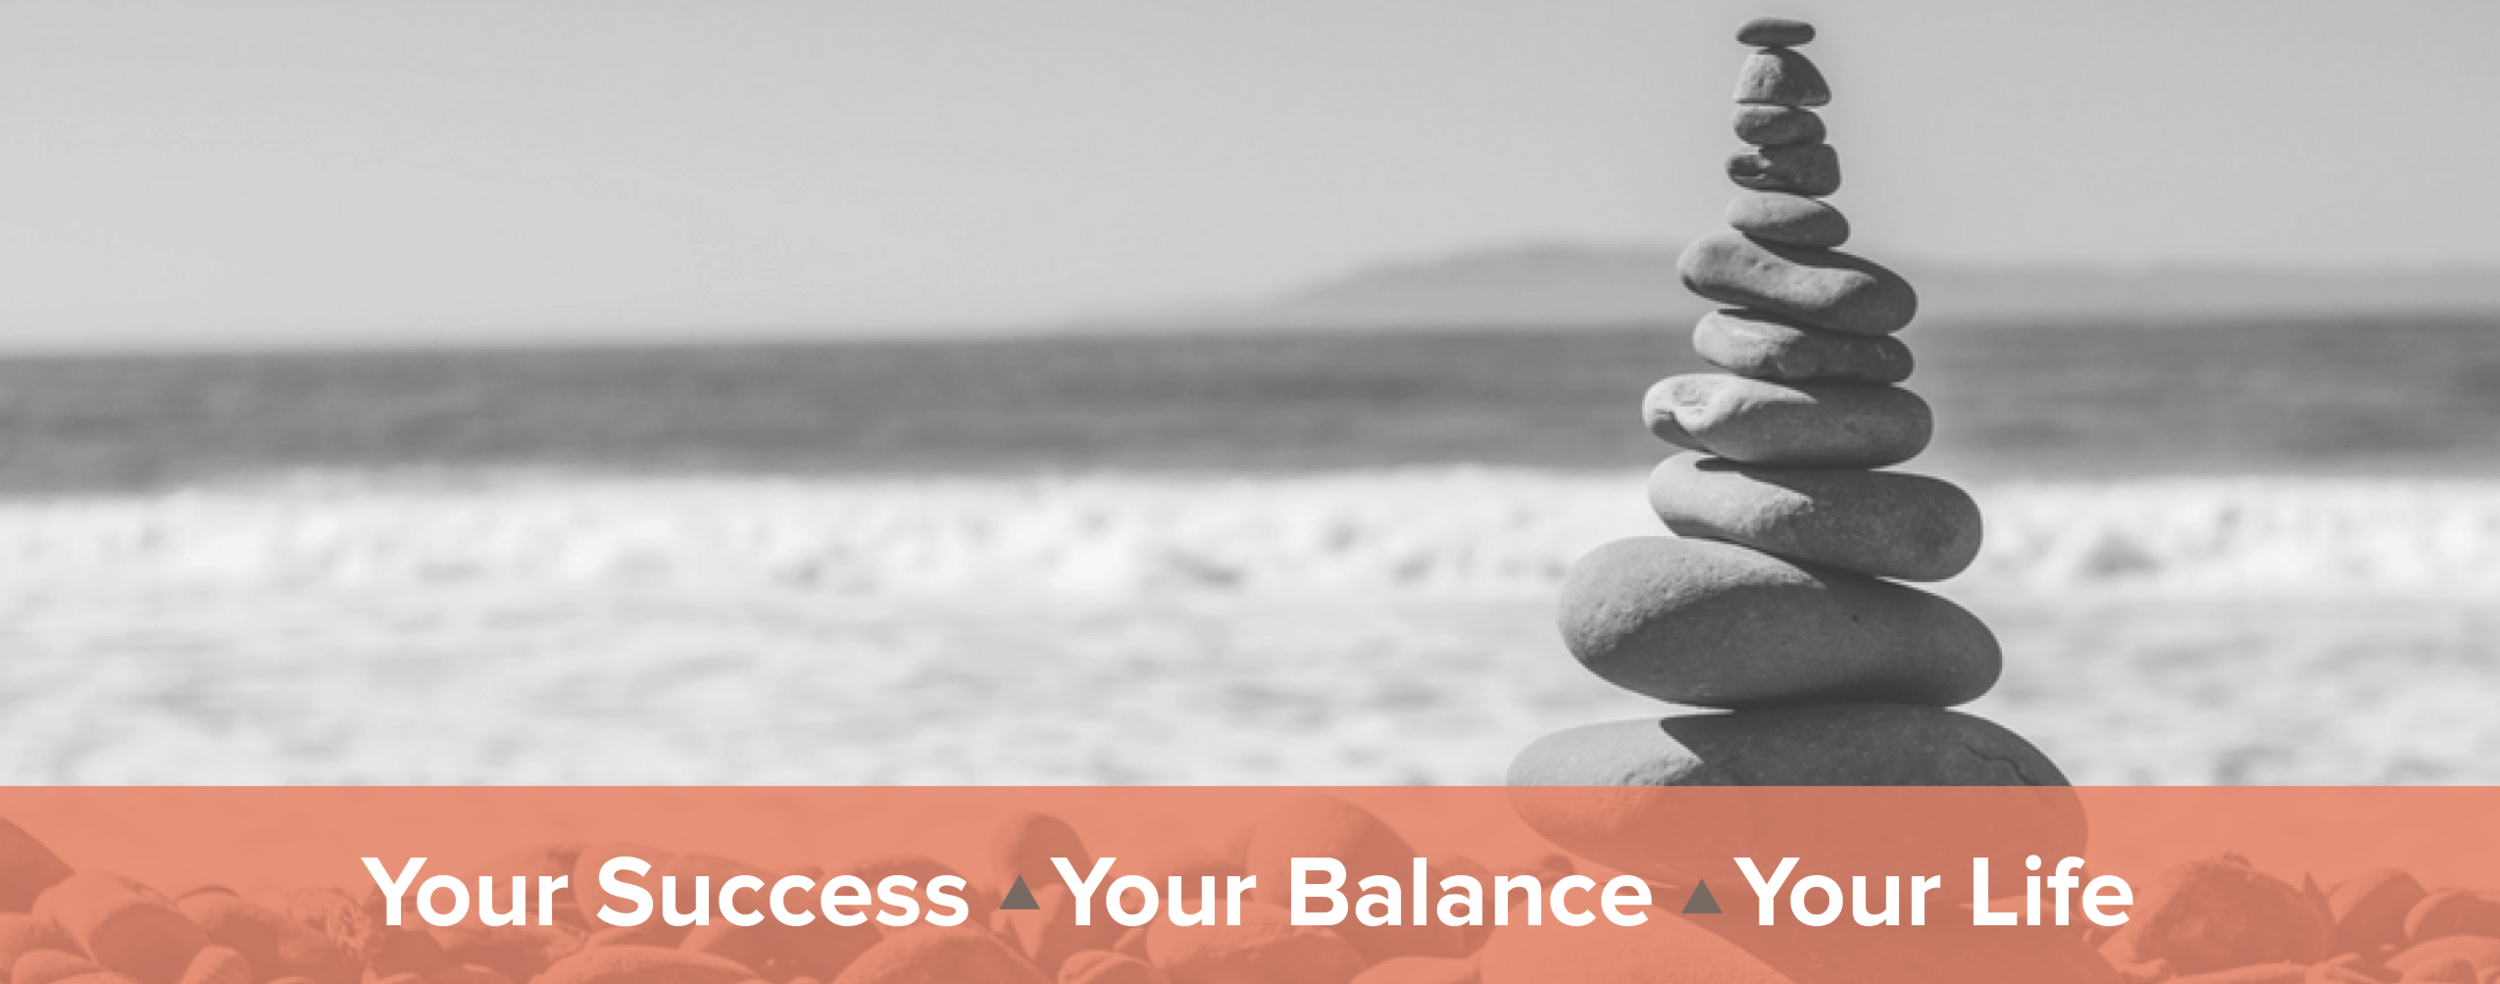 Balanced rocks on the beach and a header: Your Success, your balance, you life